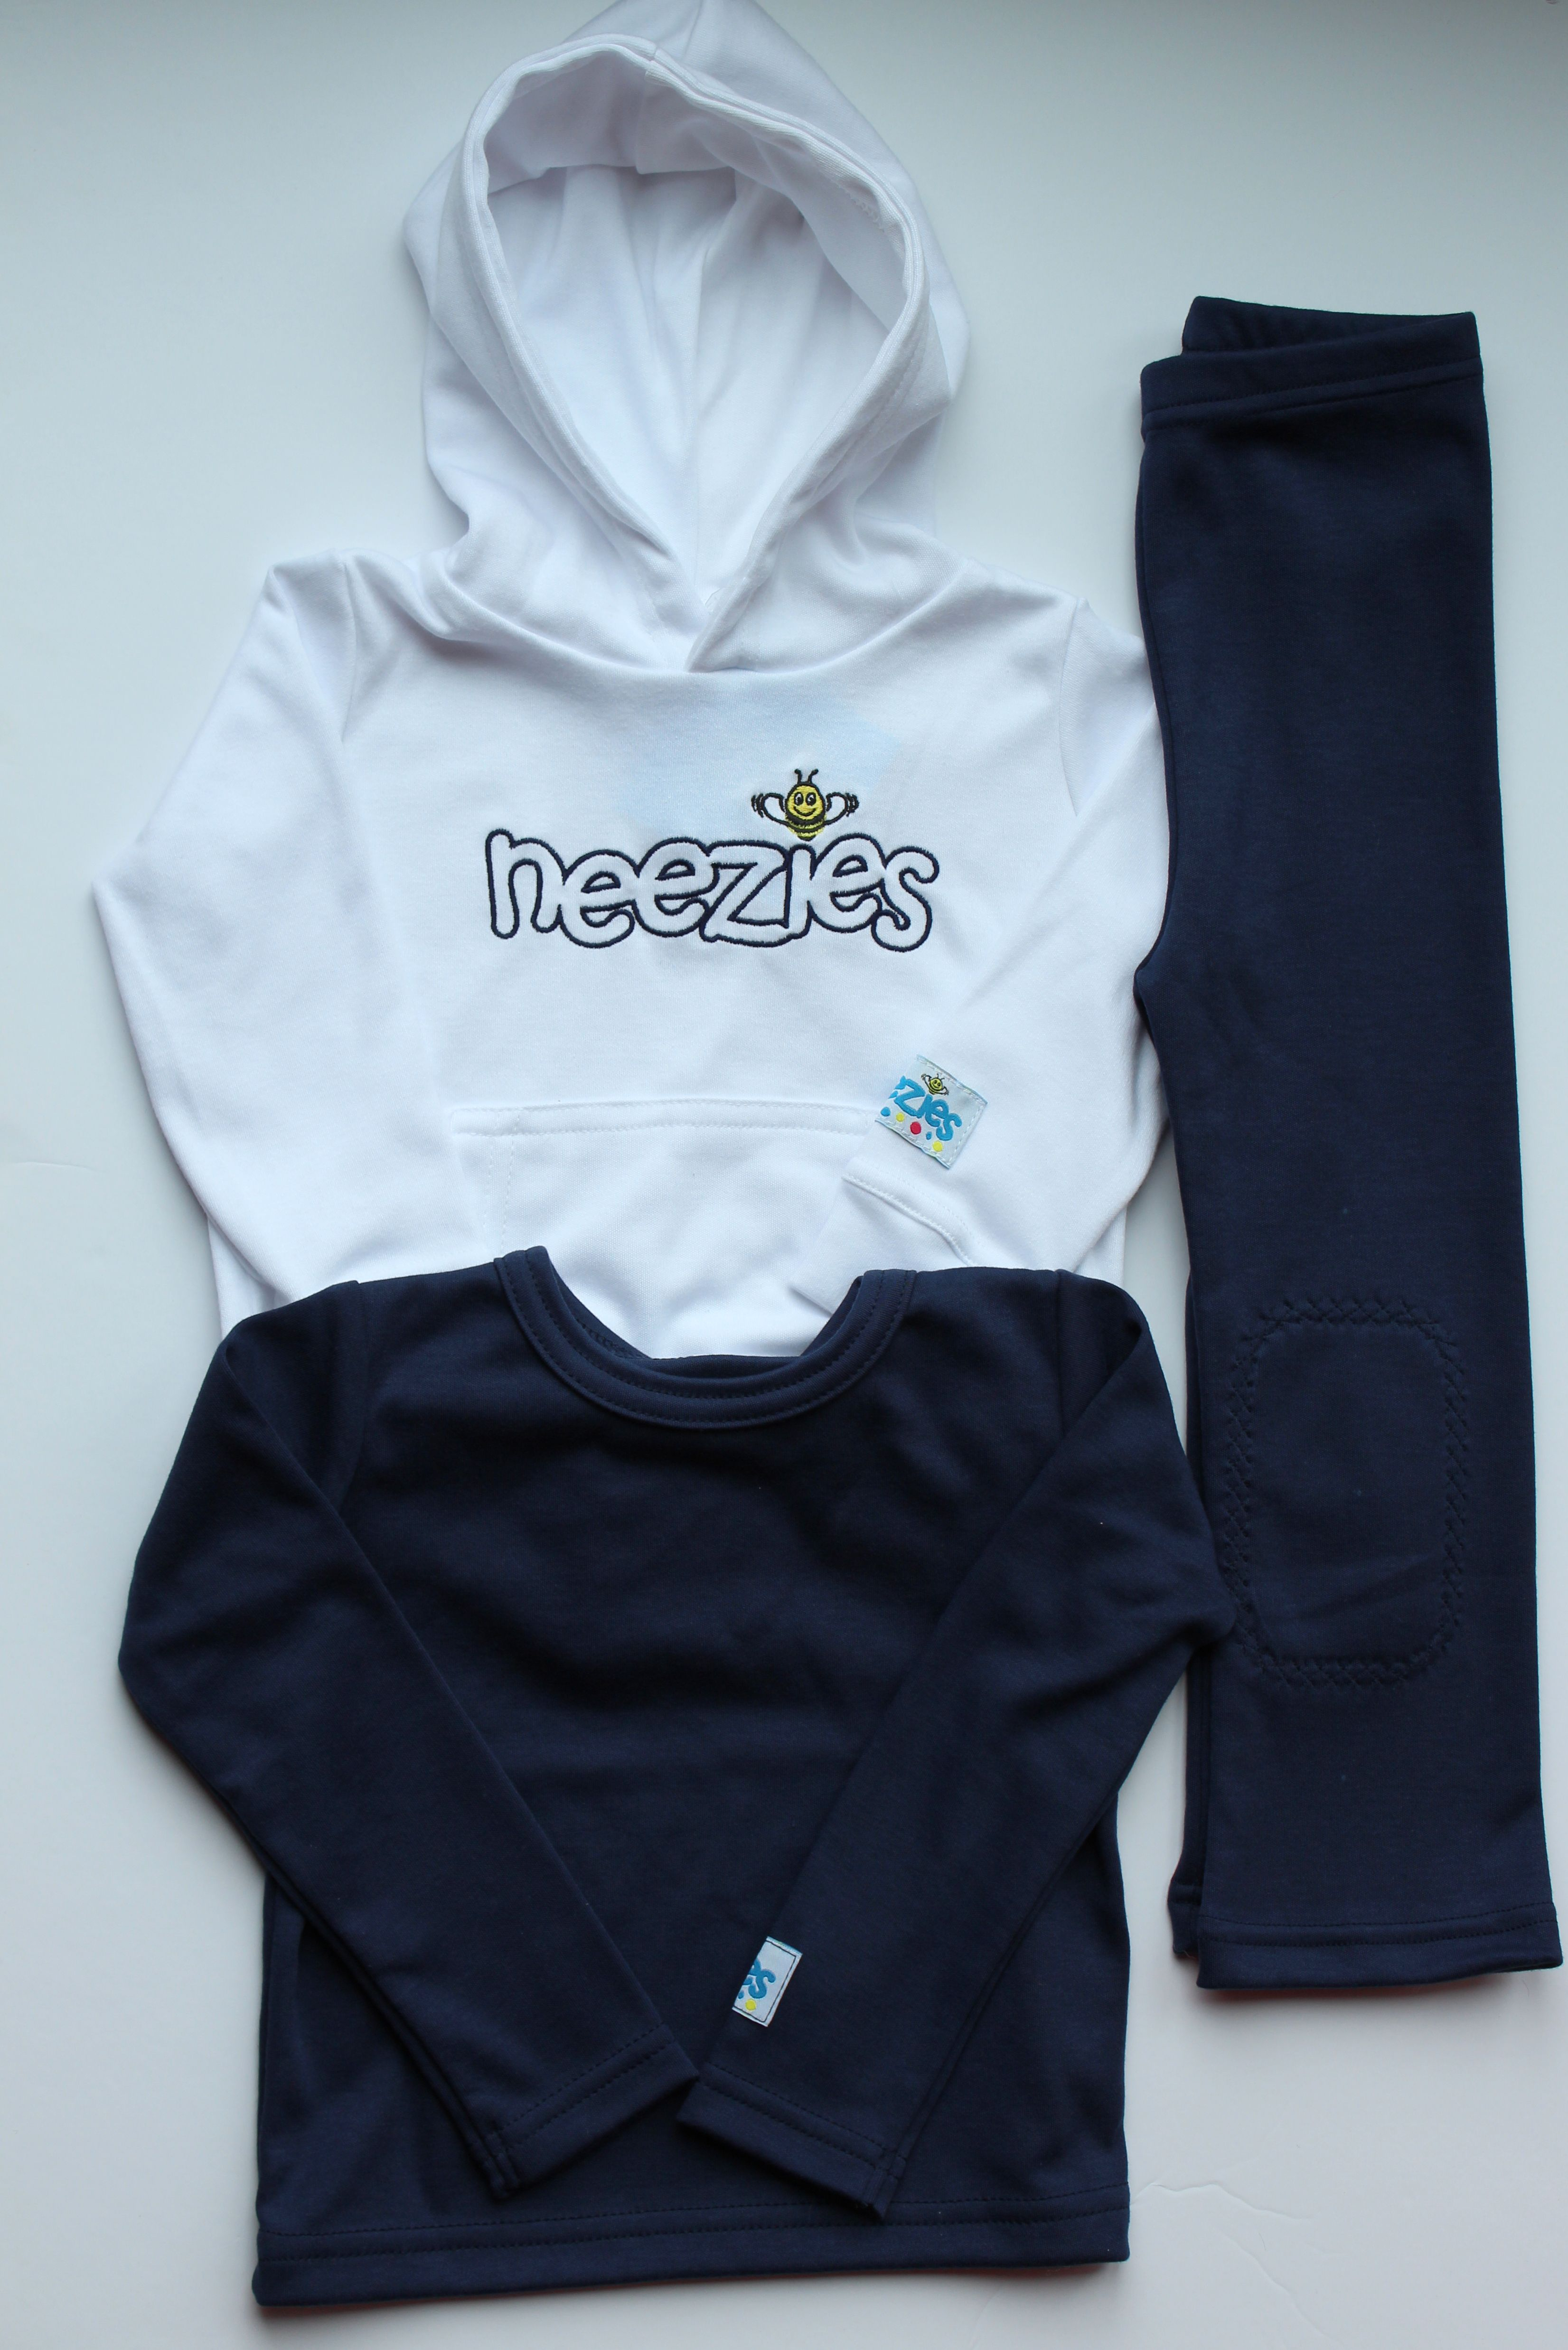 4707038b67032 Neezies navy and white - classic for all seasons. Pants have padded knees!  www.neezies.com